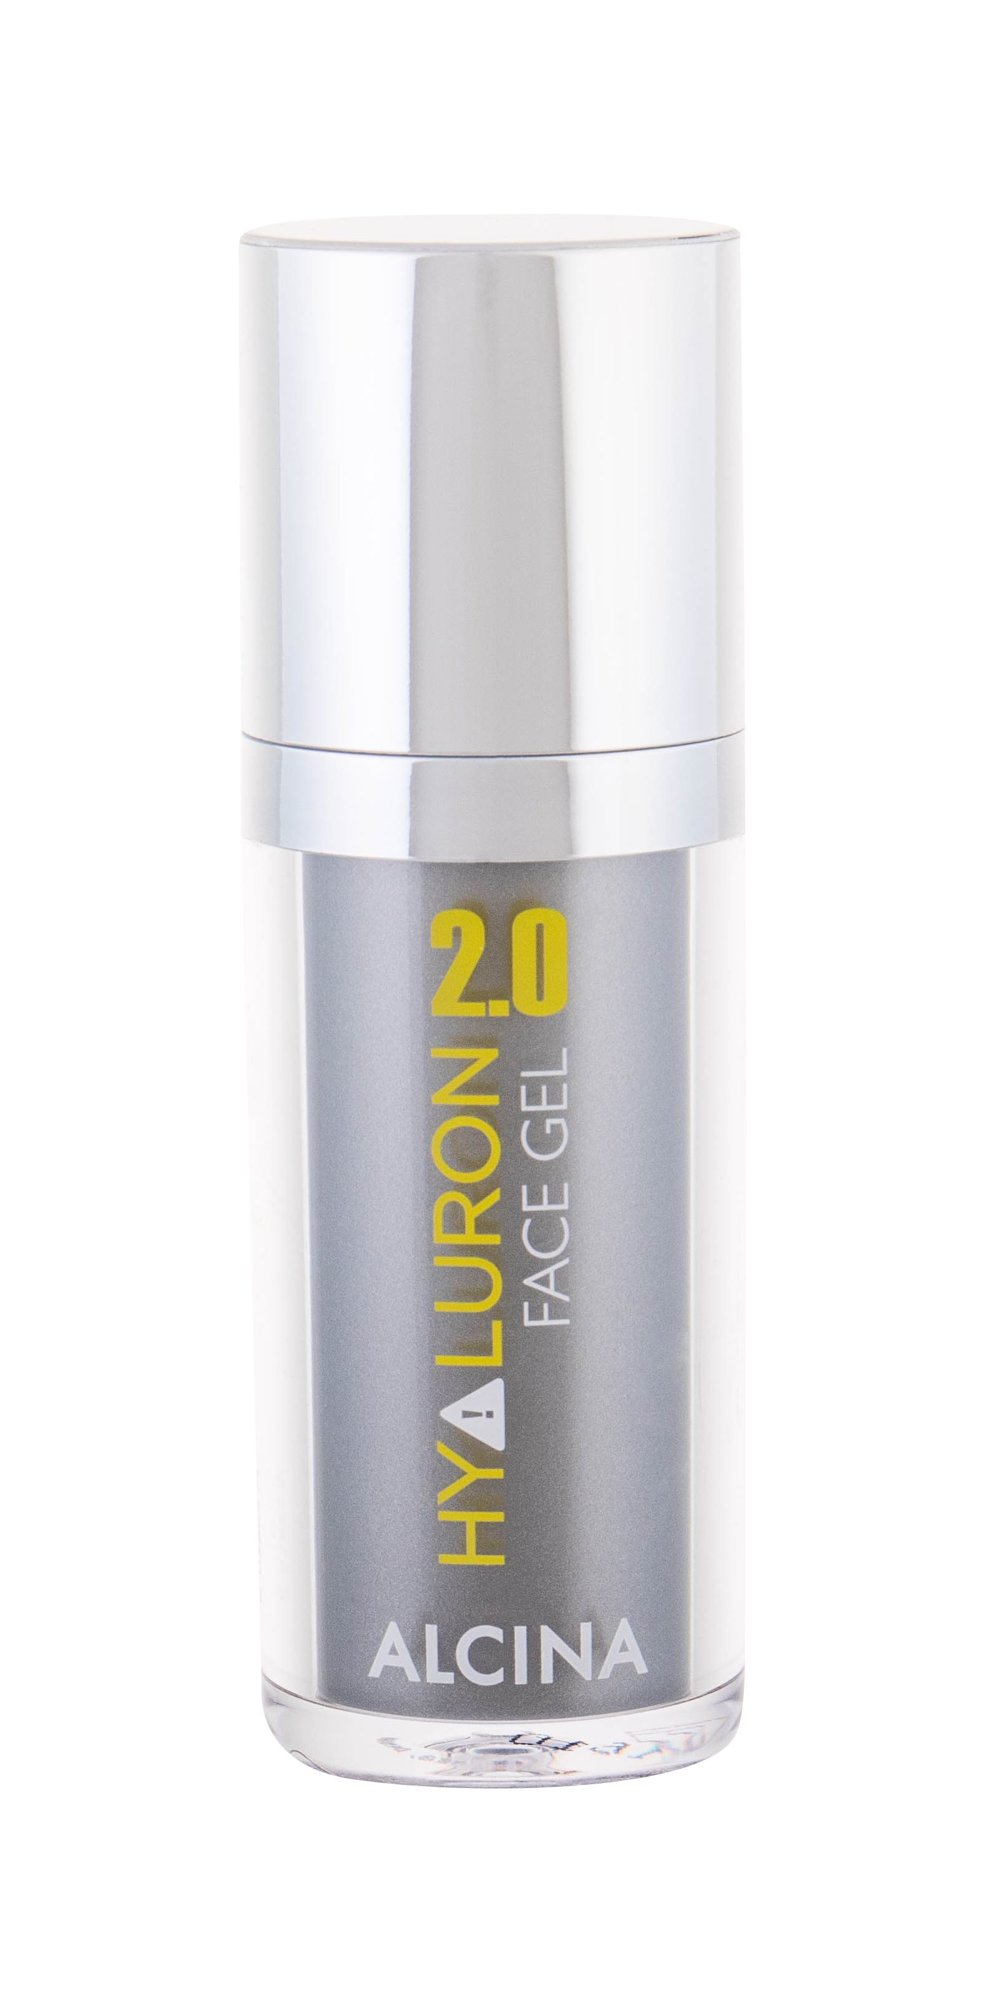 ALCINA Hyaluron 2.0 Facial Gel 30ml